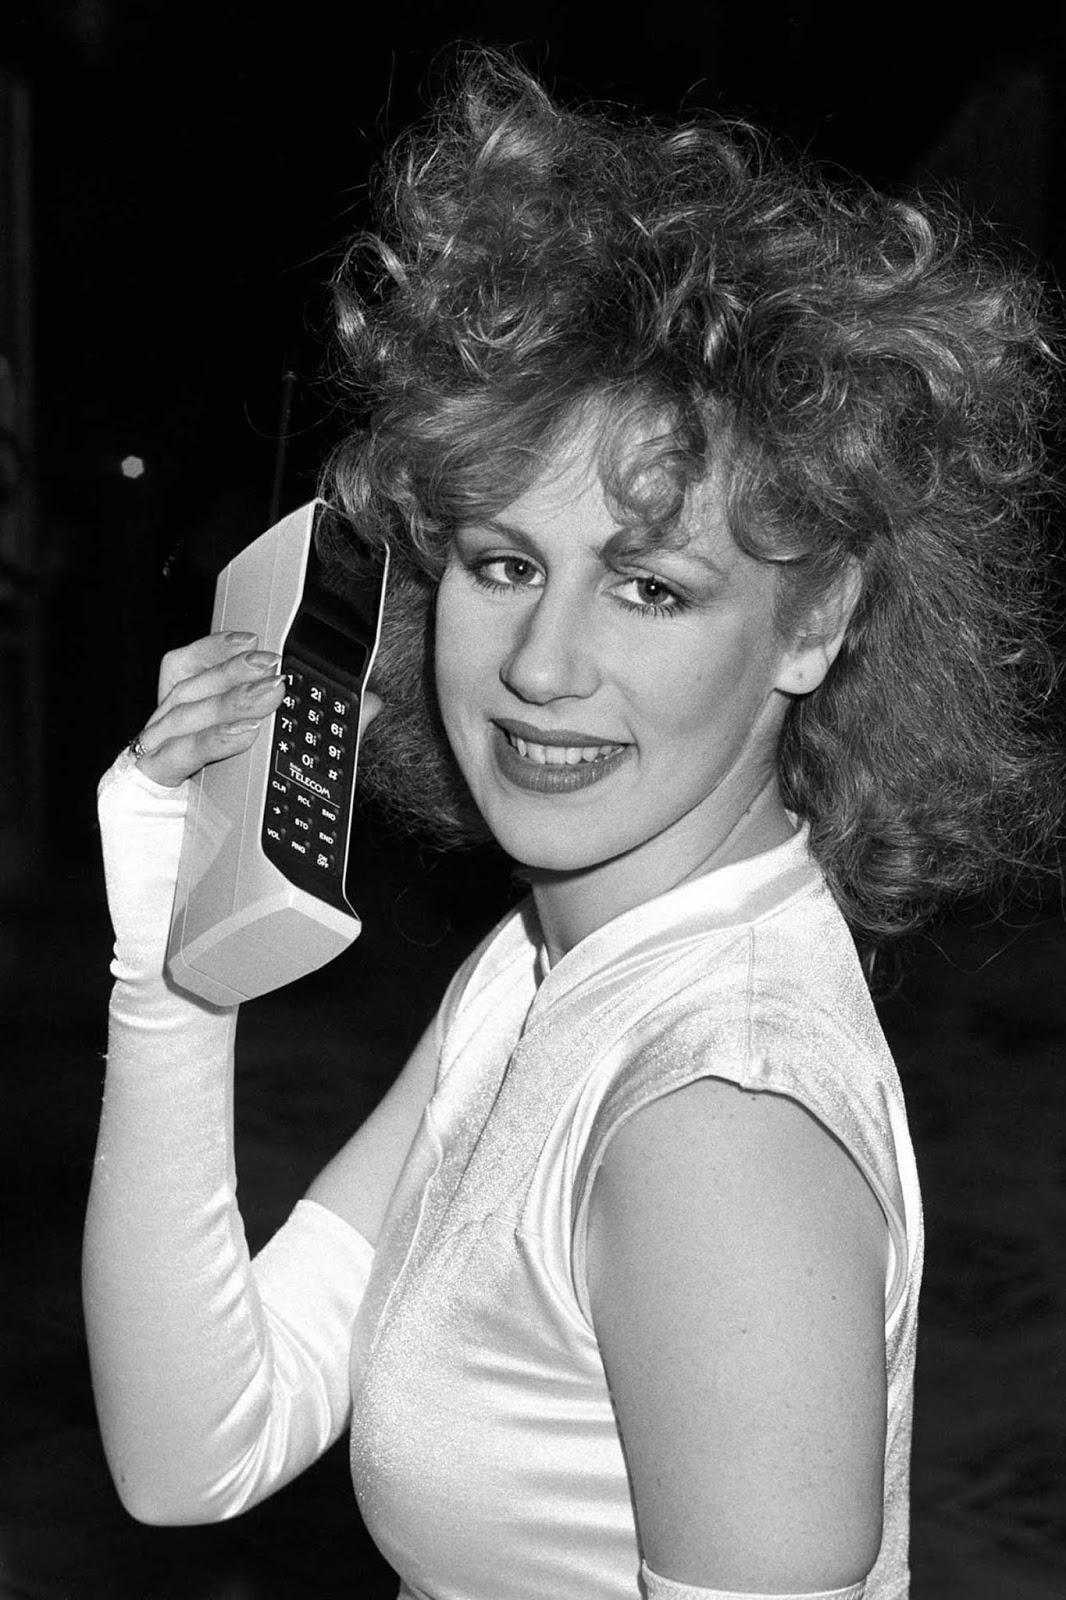 A model poses with a phone at the launch of the Cellnet cellular radio system mobile phone service in London. 1985.